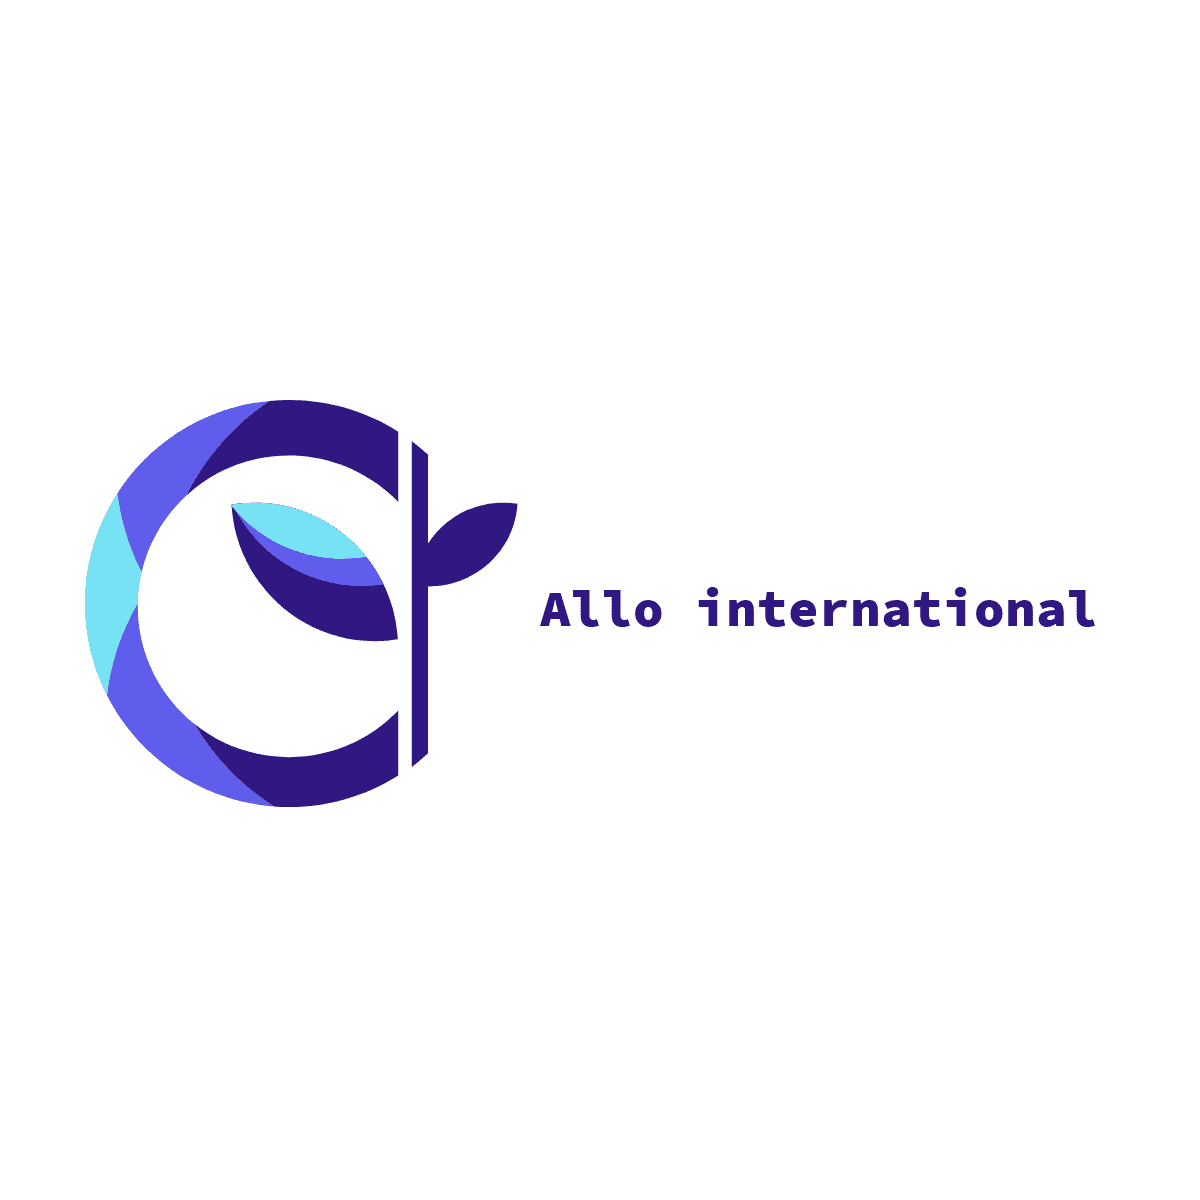 I can create a logo for any type of company